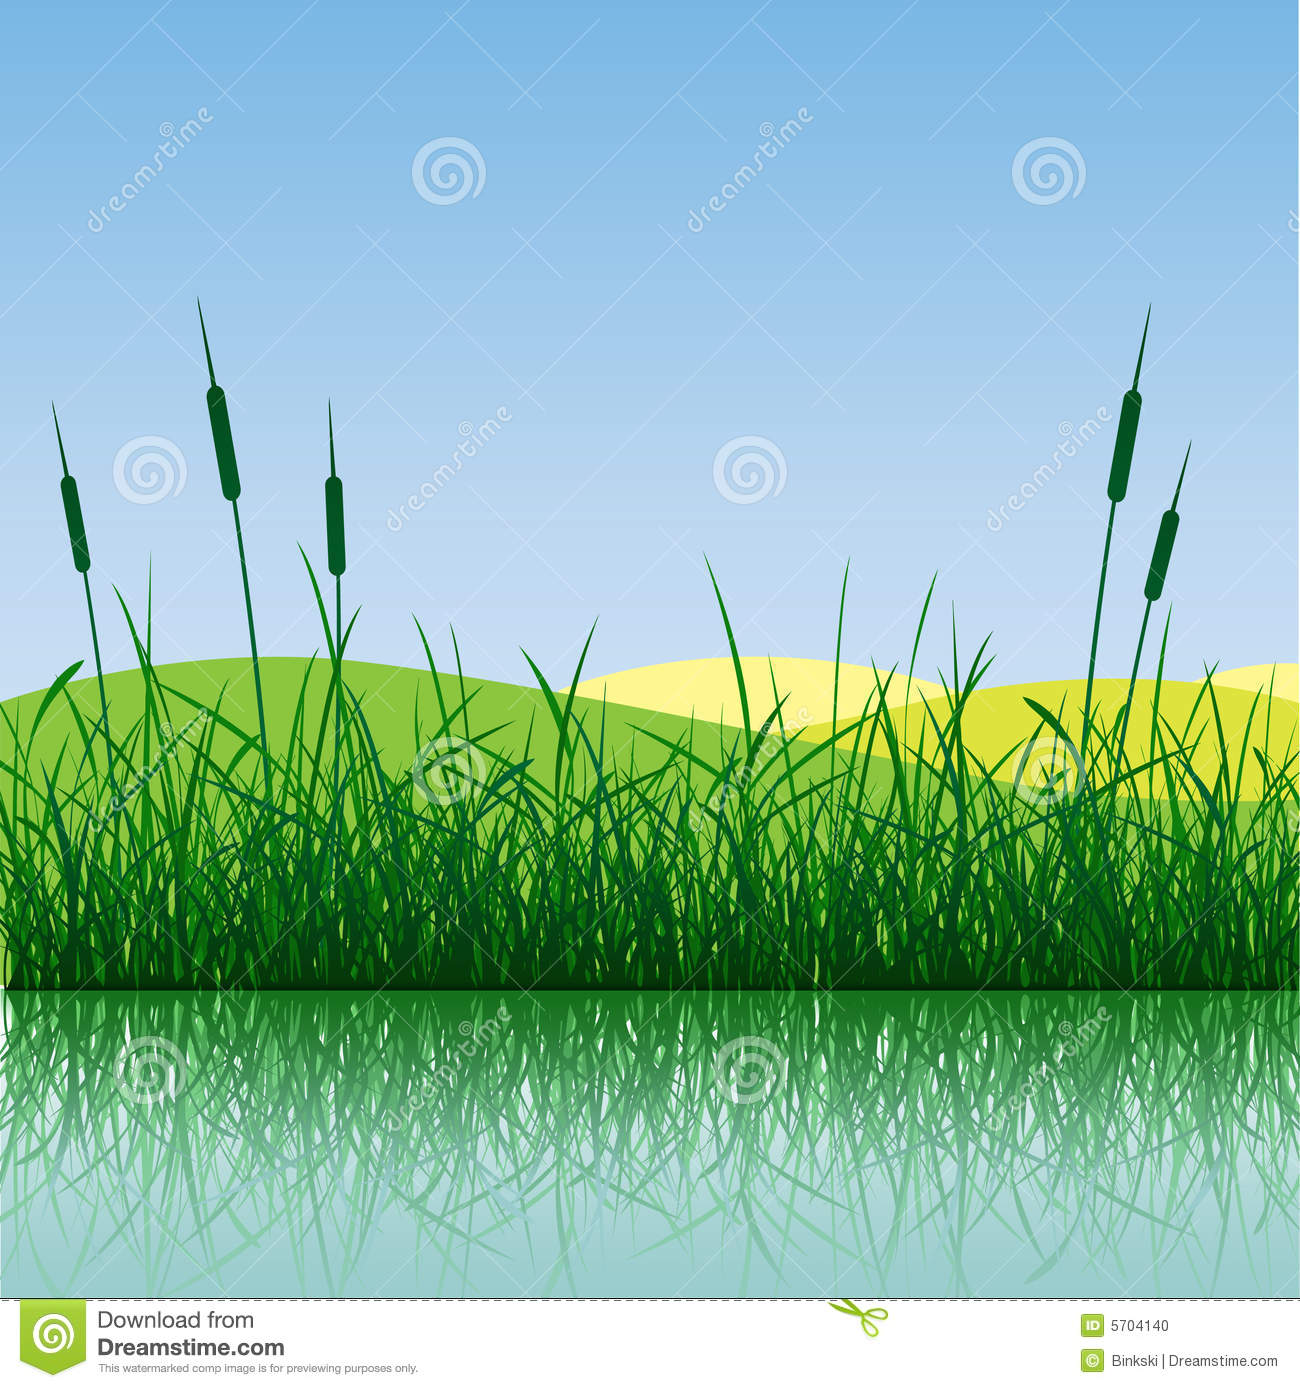 Grass in the water clipart - Clipground